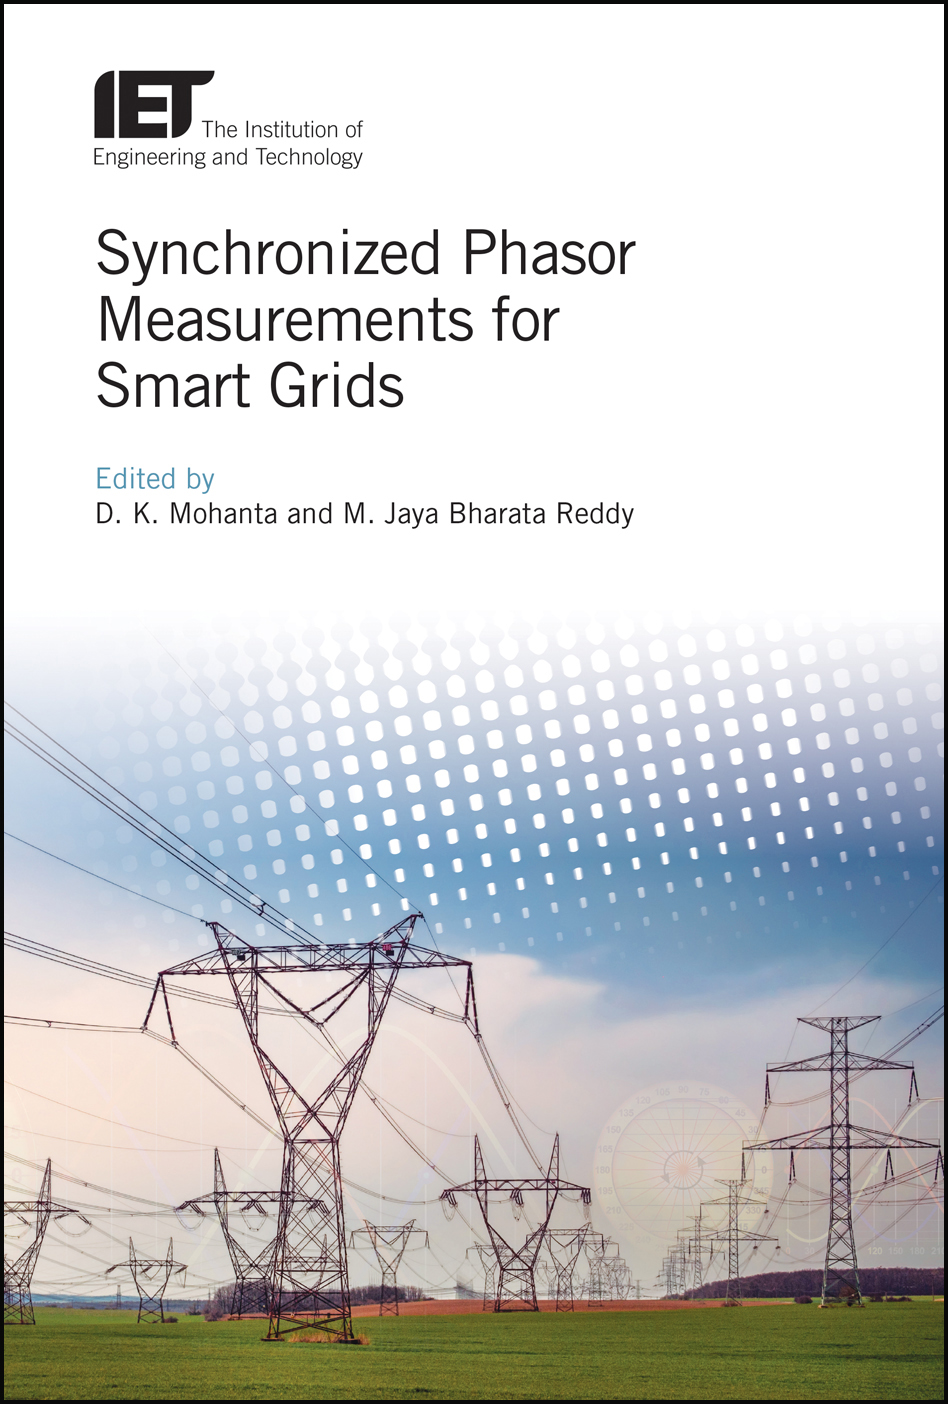 Synchronized Phasor Measurements for Smart Grids